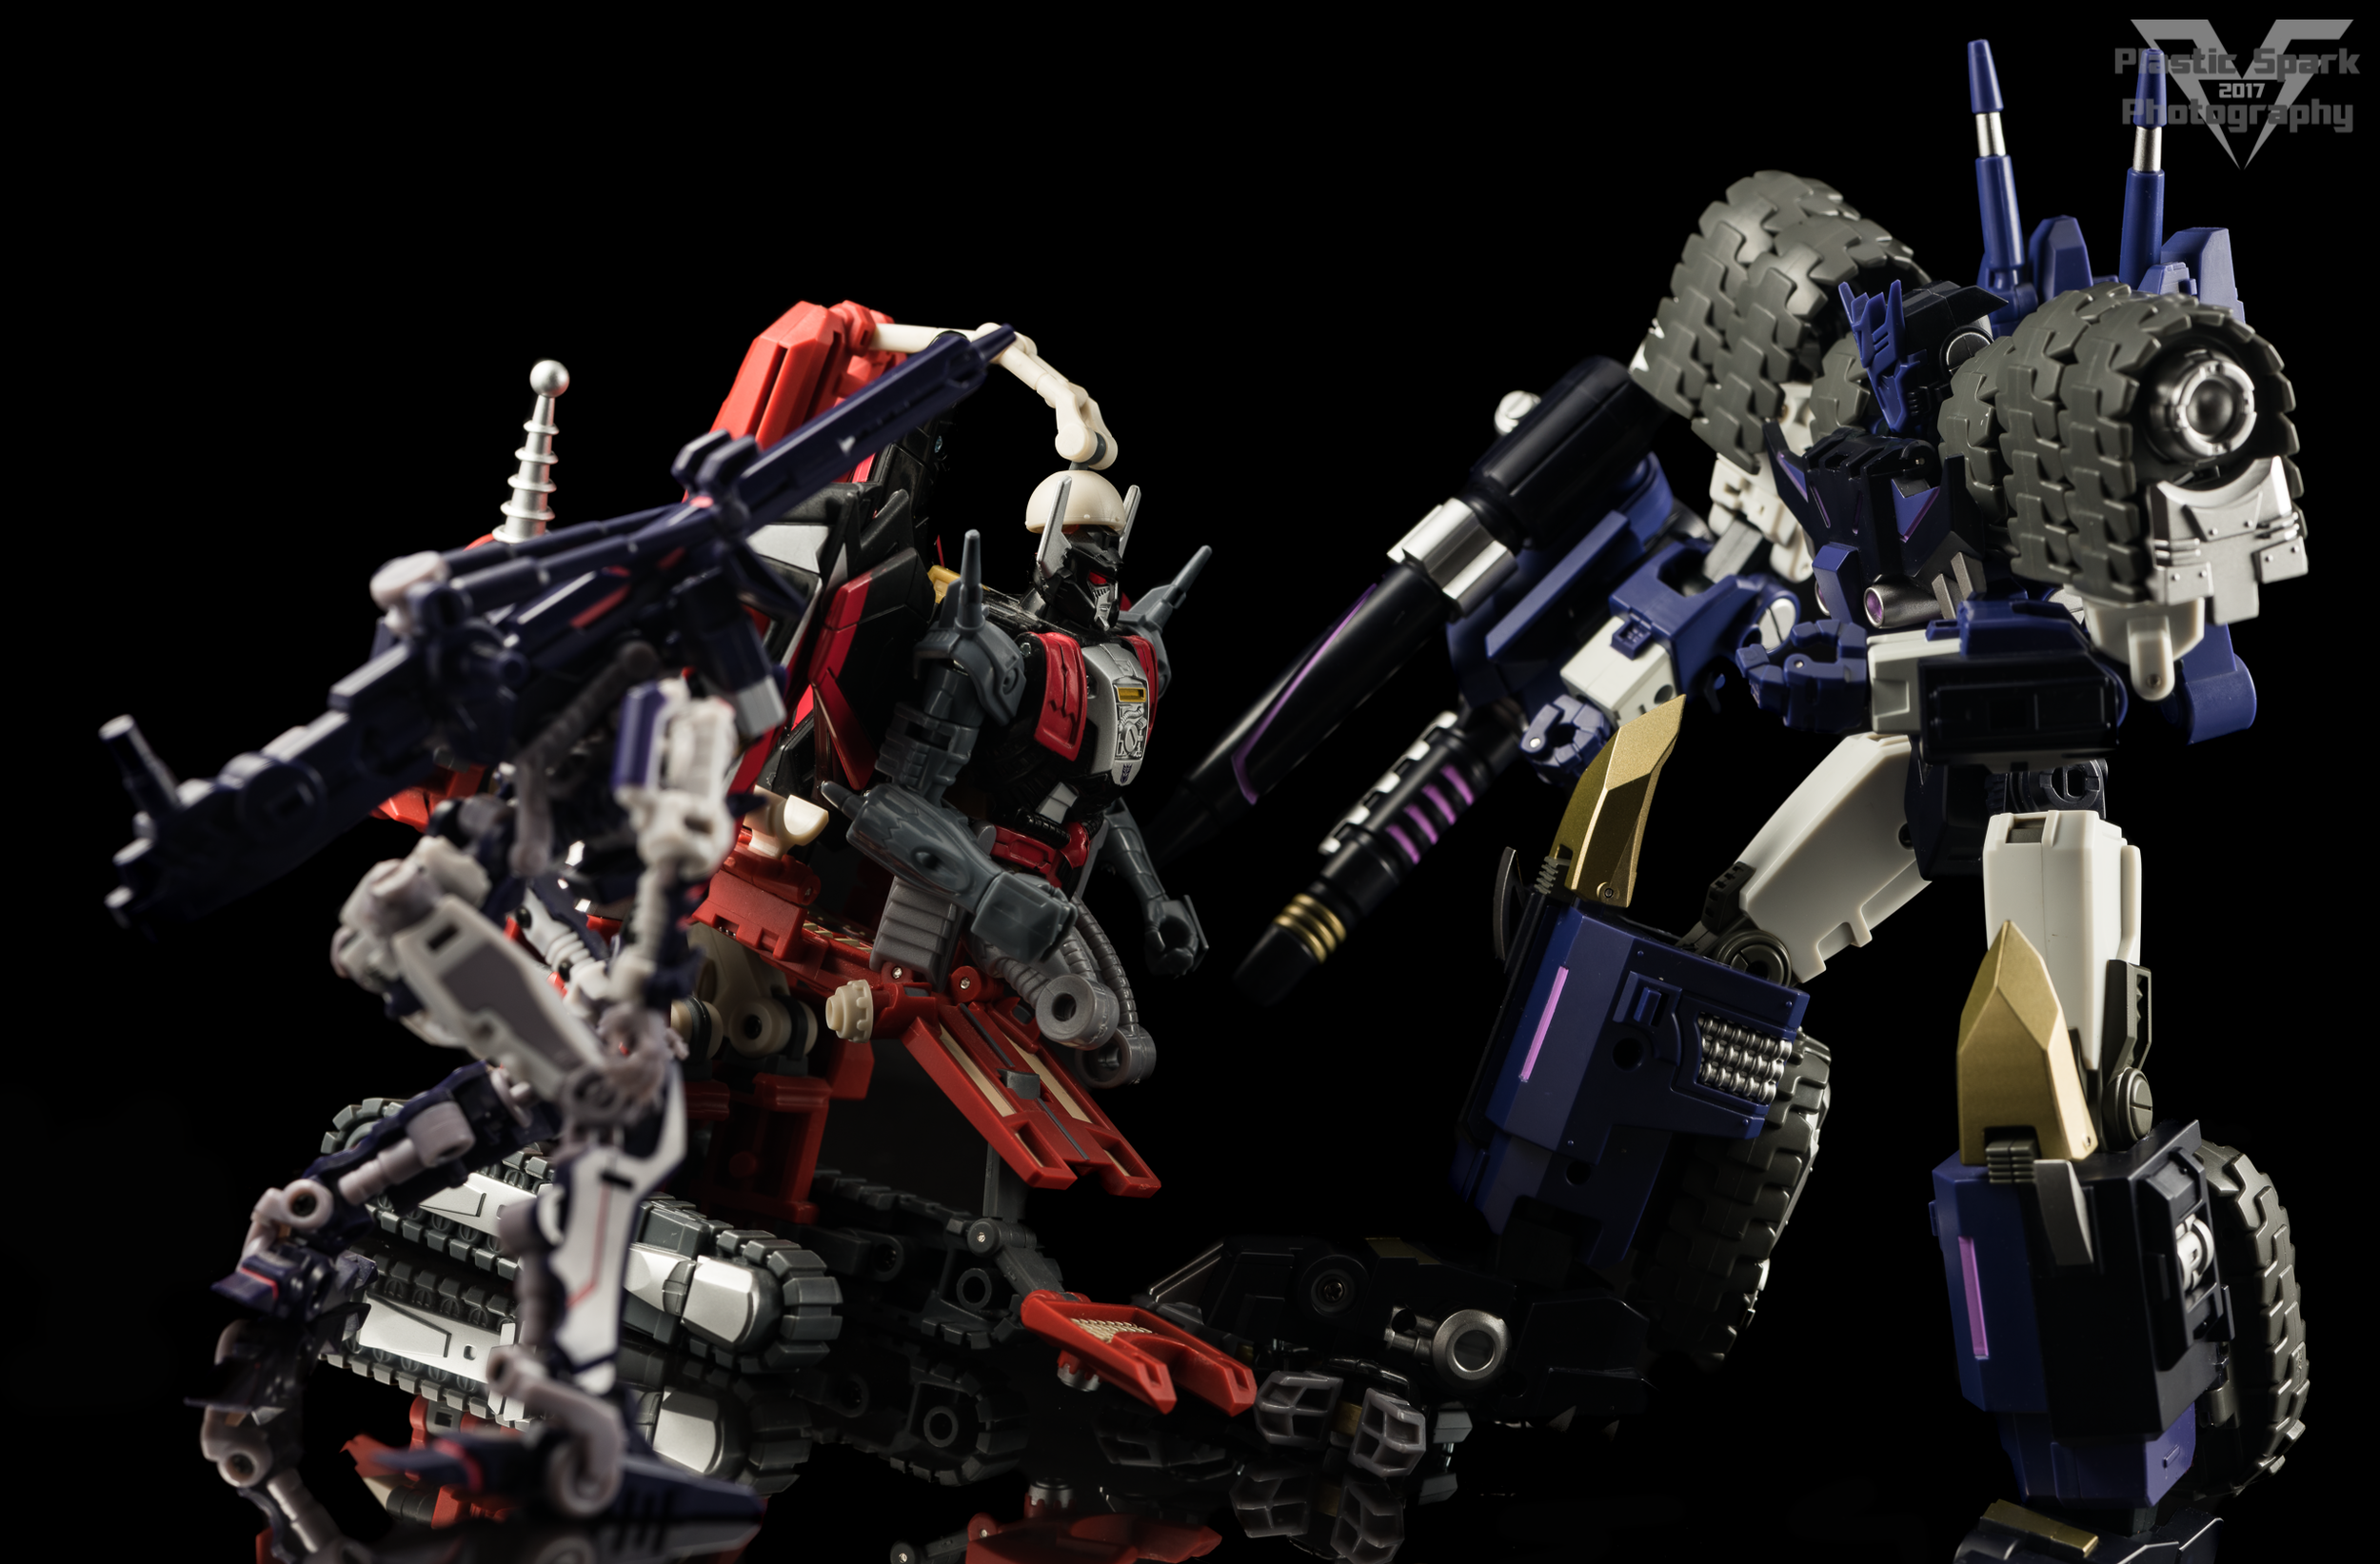 Mastermind-Creations-R-19-Kultur-(13-of-24).png